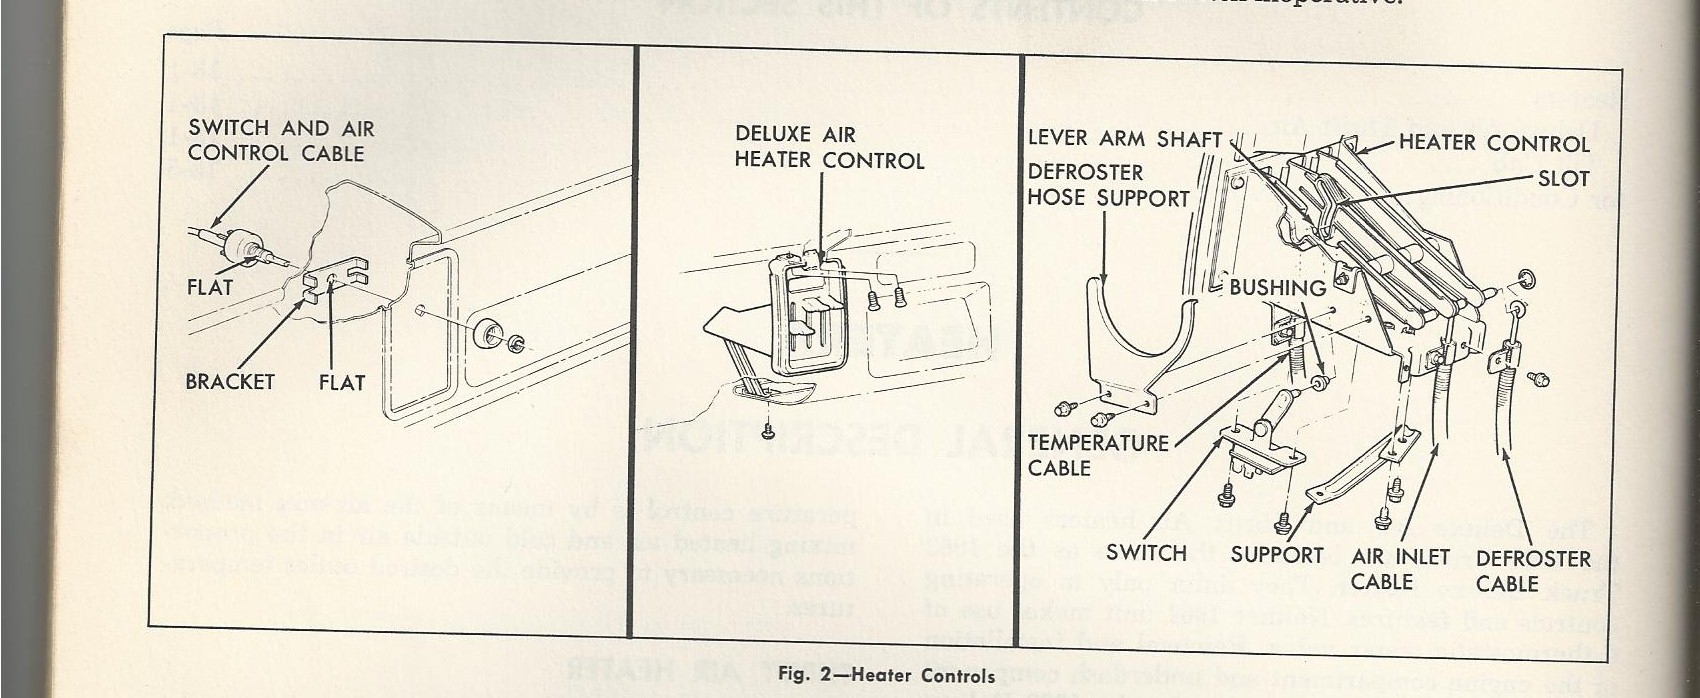 wiring schematic for heater switch blower resistor in '64 '66 64 c10 wiring diagram at alyssarenee.co